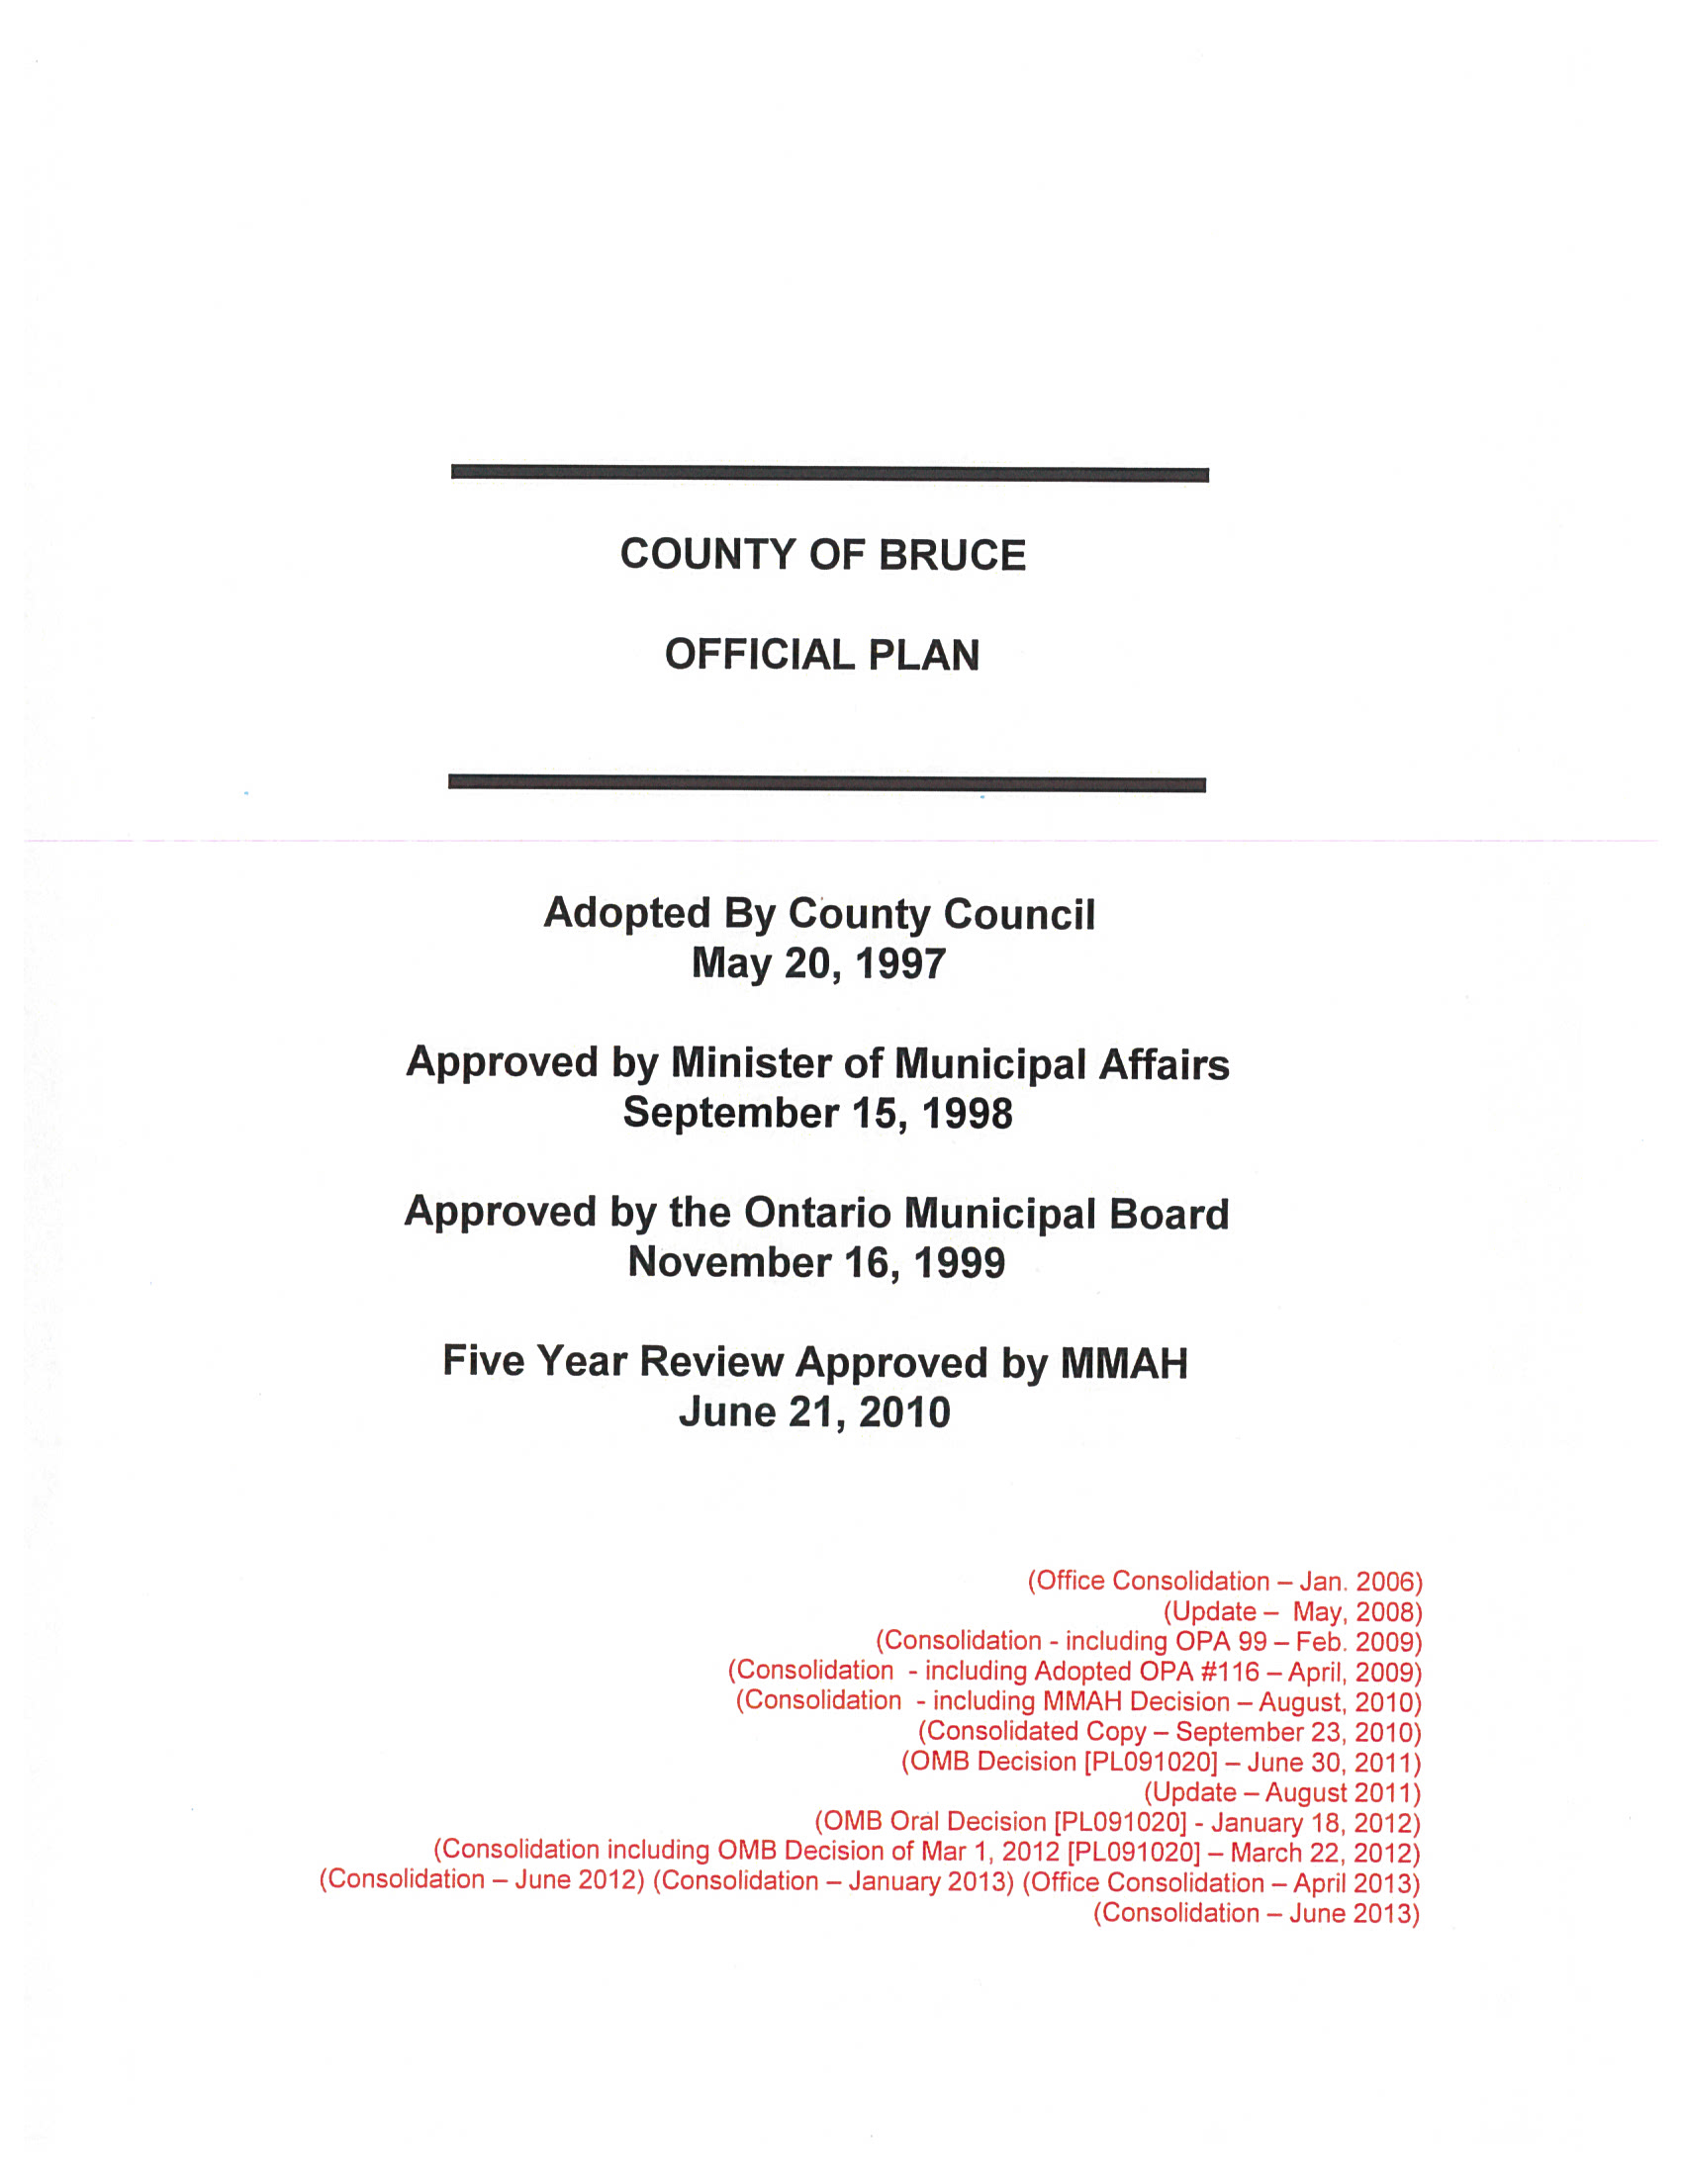 County of Bruce Official Plan